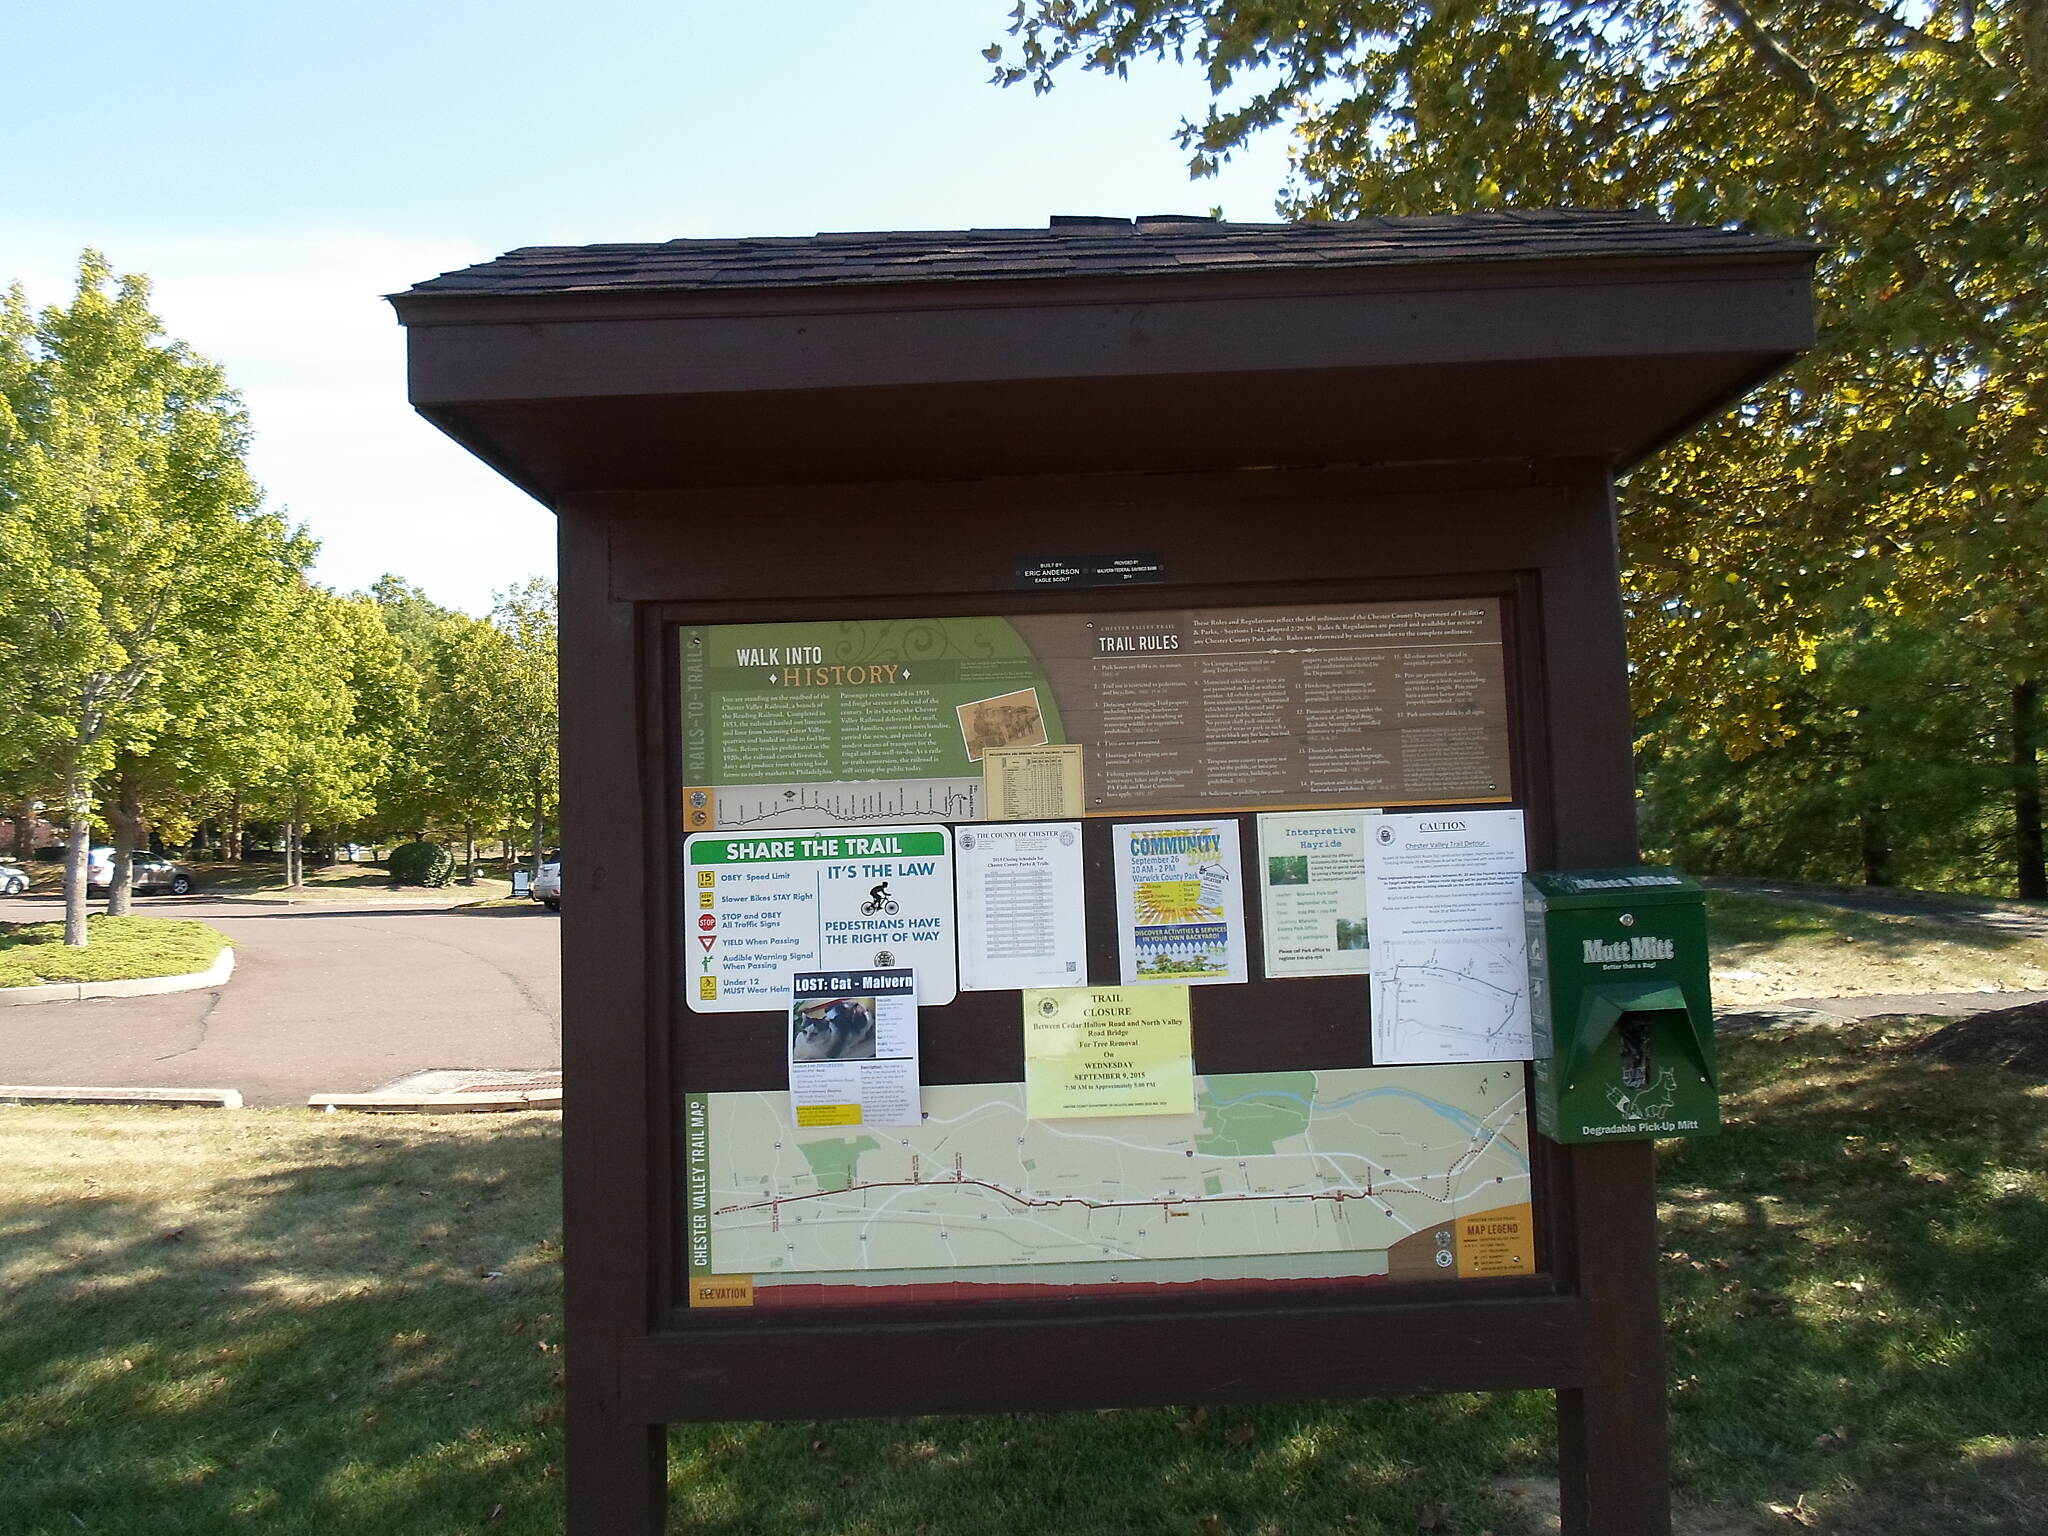 Chester Valley Trail Chester Valley Trail Kiosk immediately east of the Howellville Road crossing. Taken Sept. 2015.